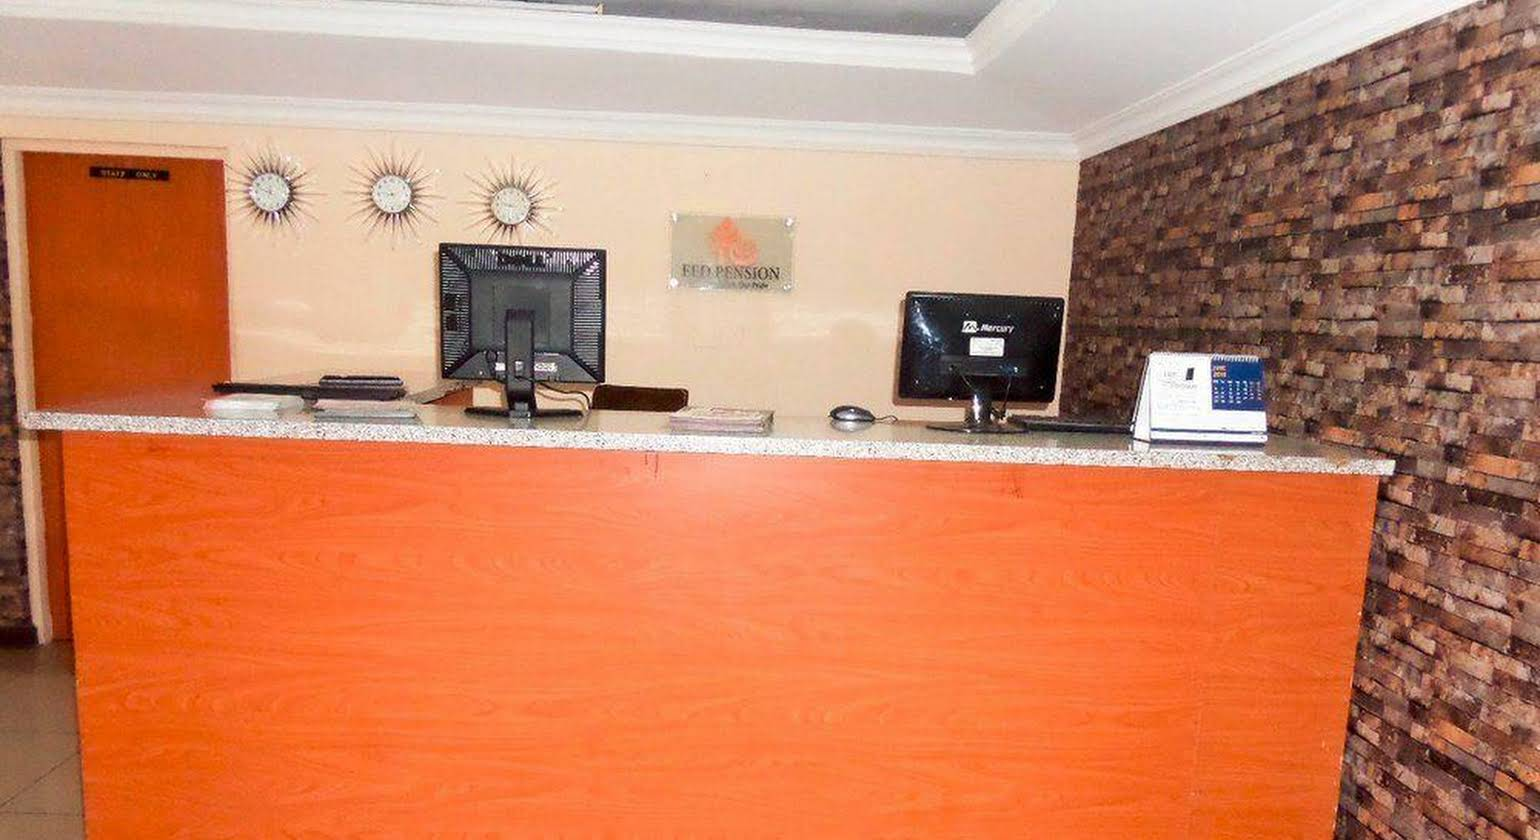 EED Pension Boutique